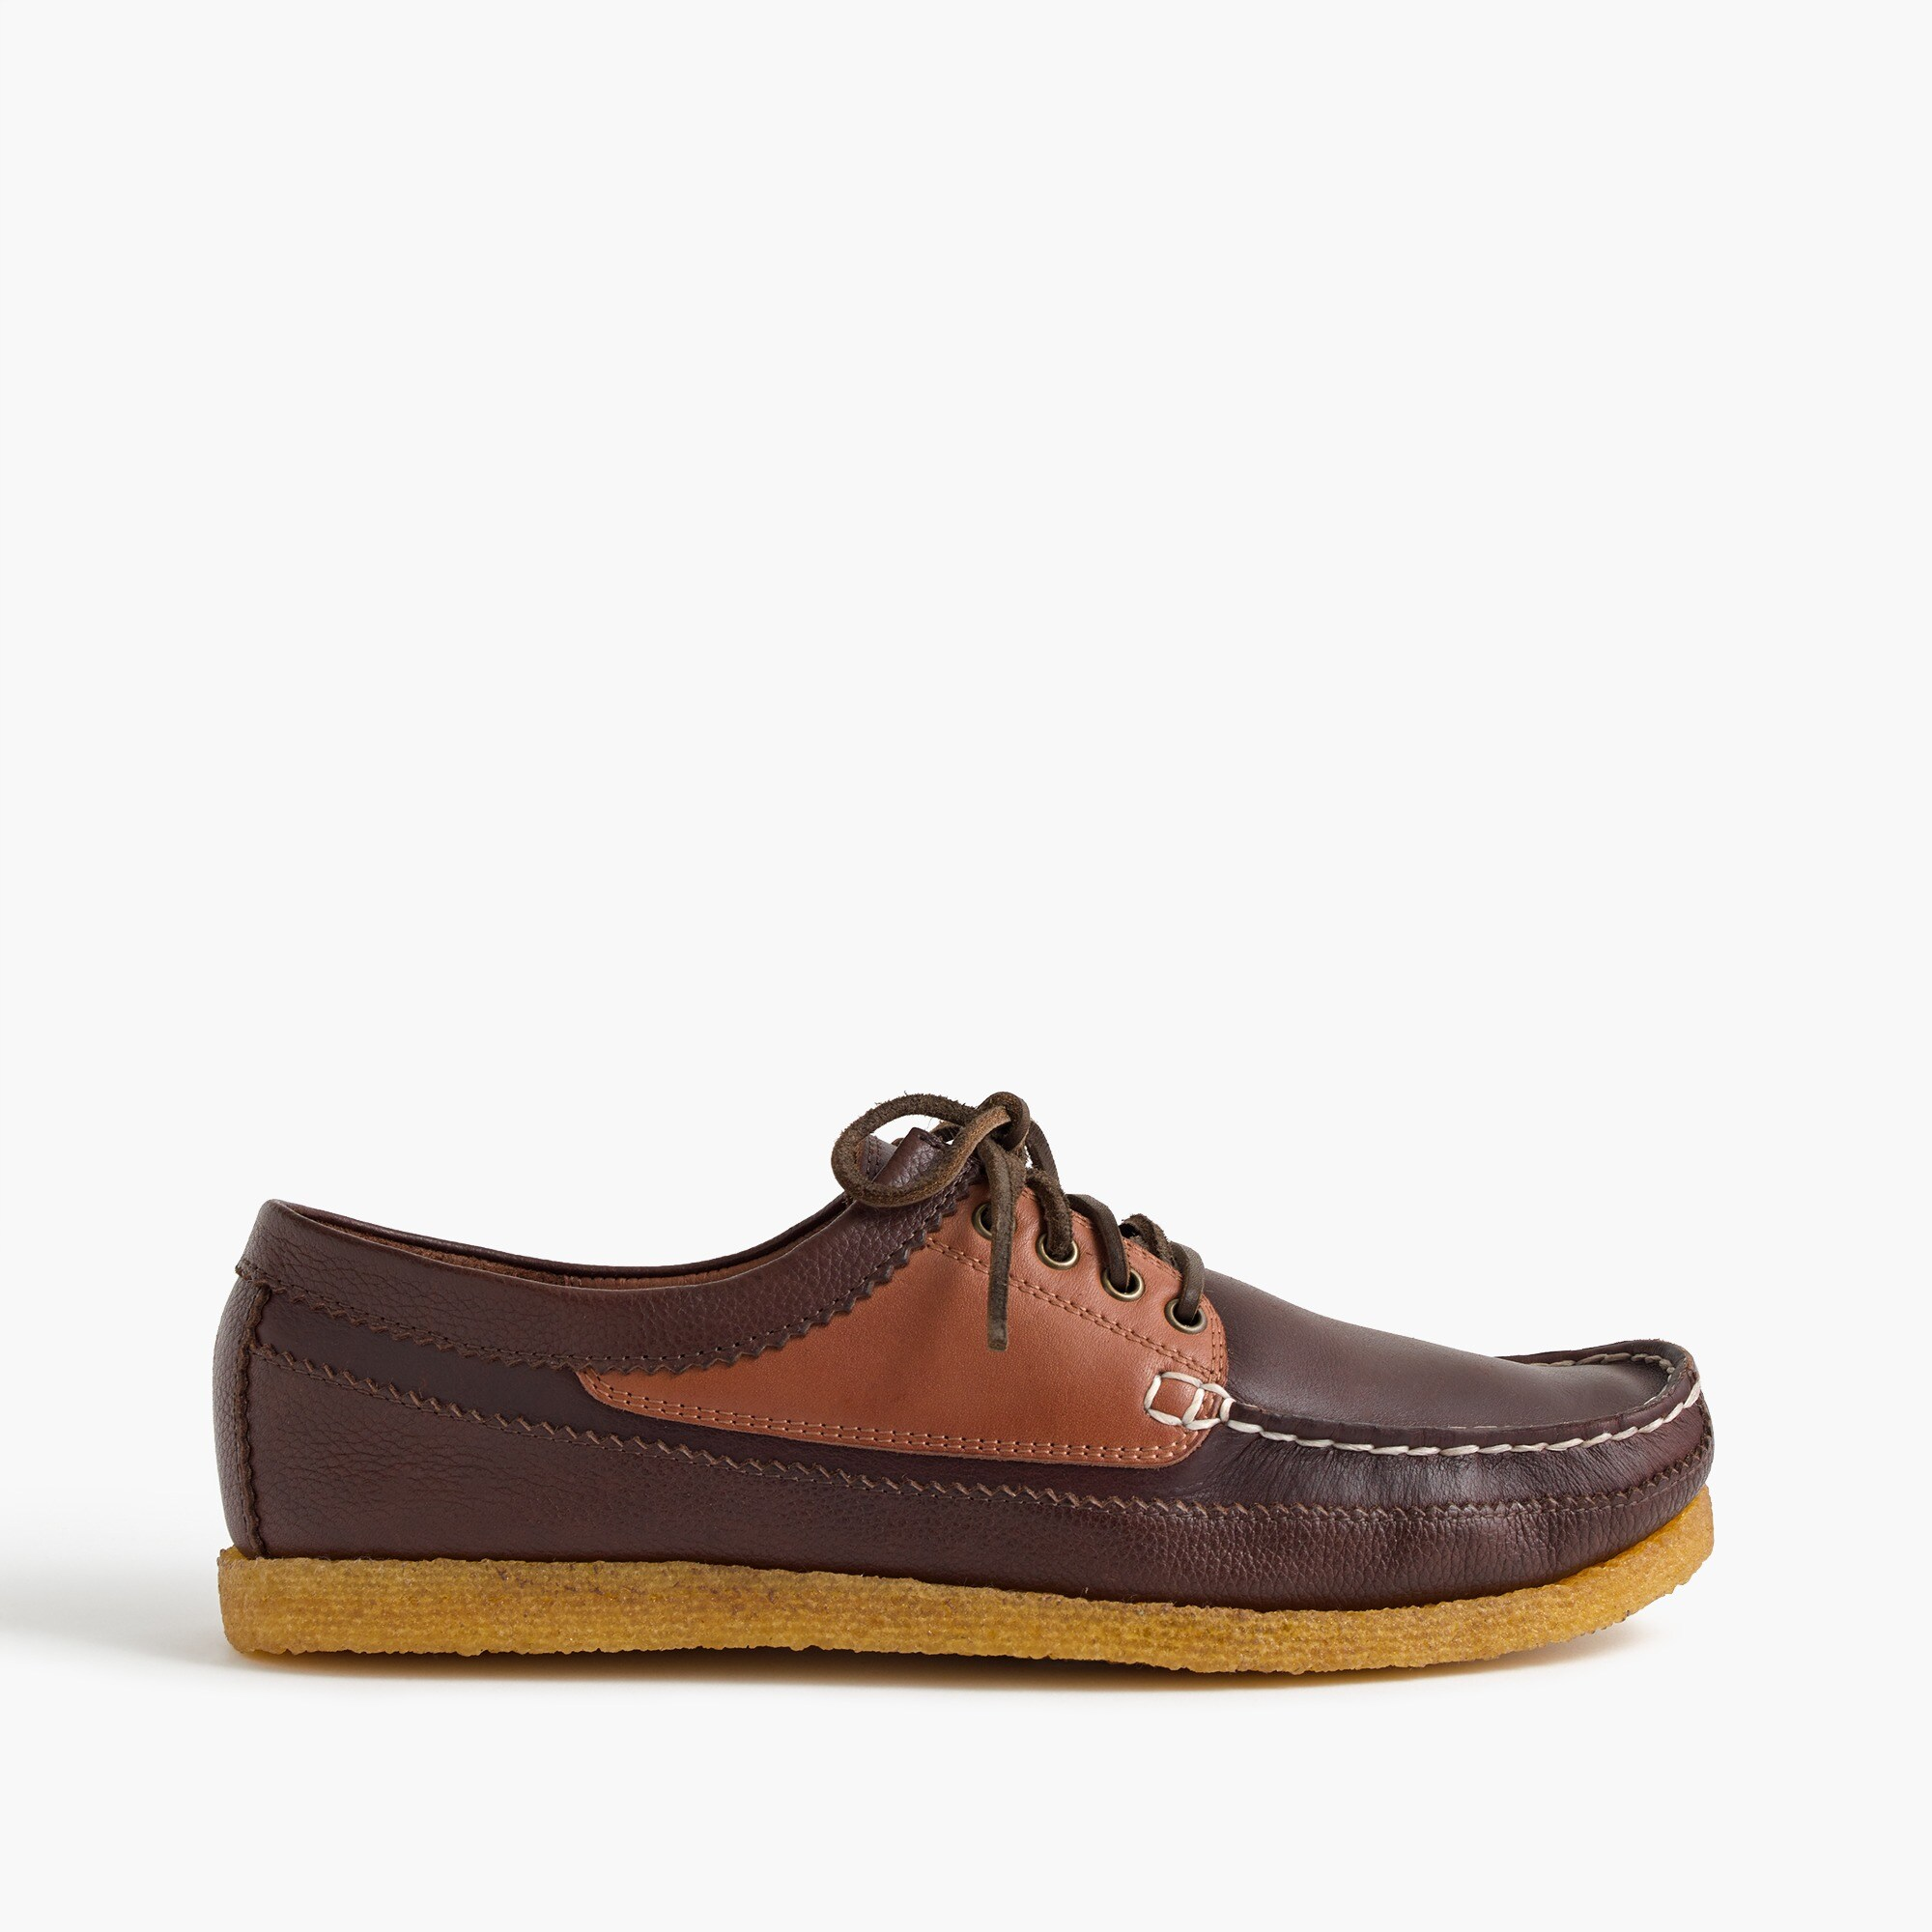 Wallace & Barnes crepe-sole moccasins with 4 eyelets